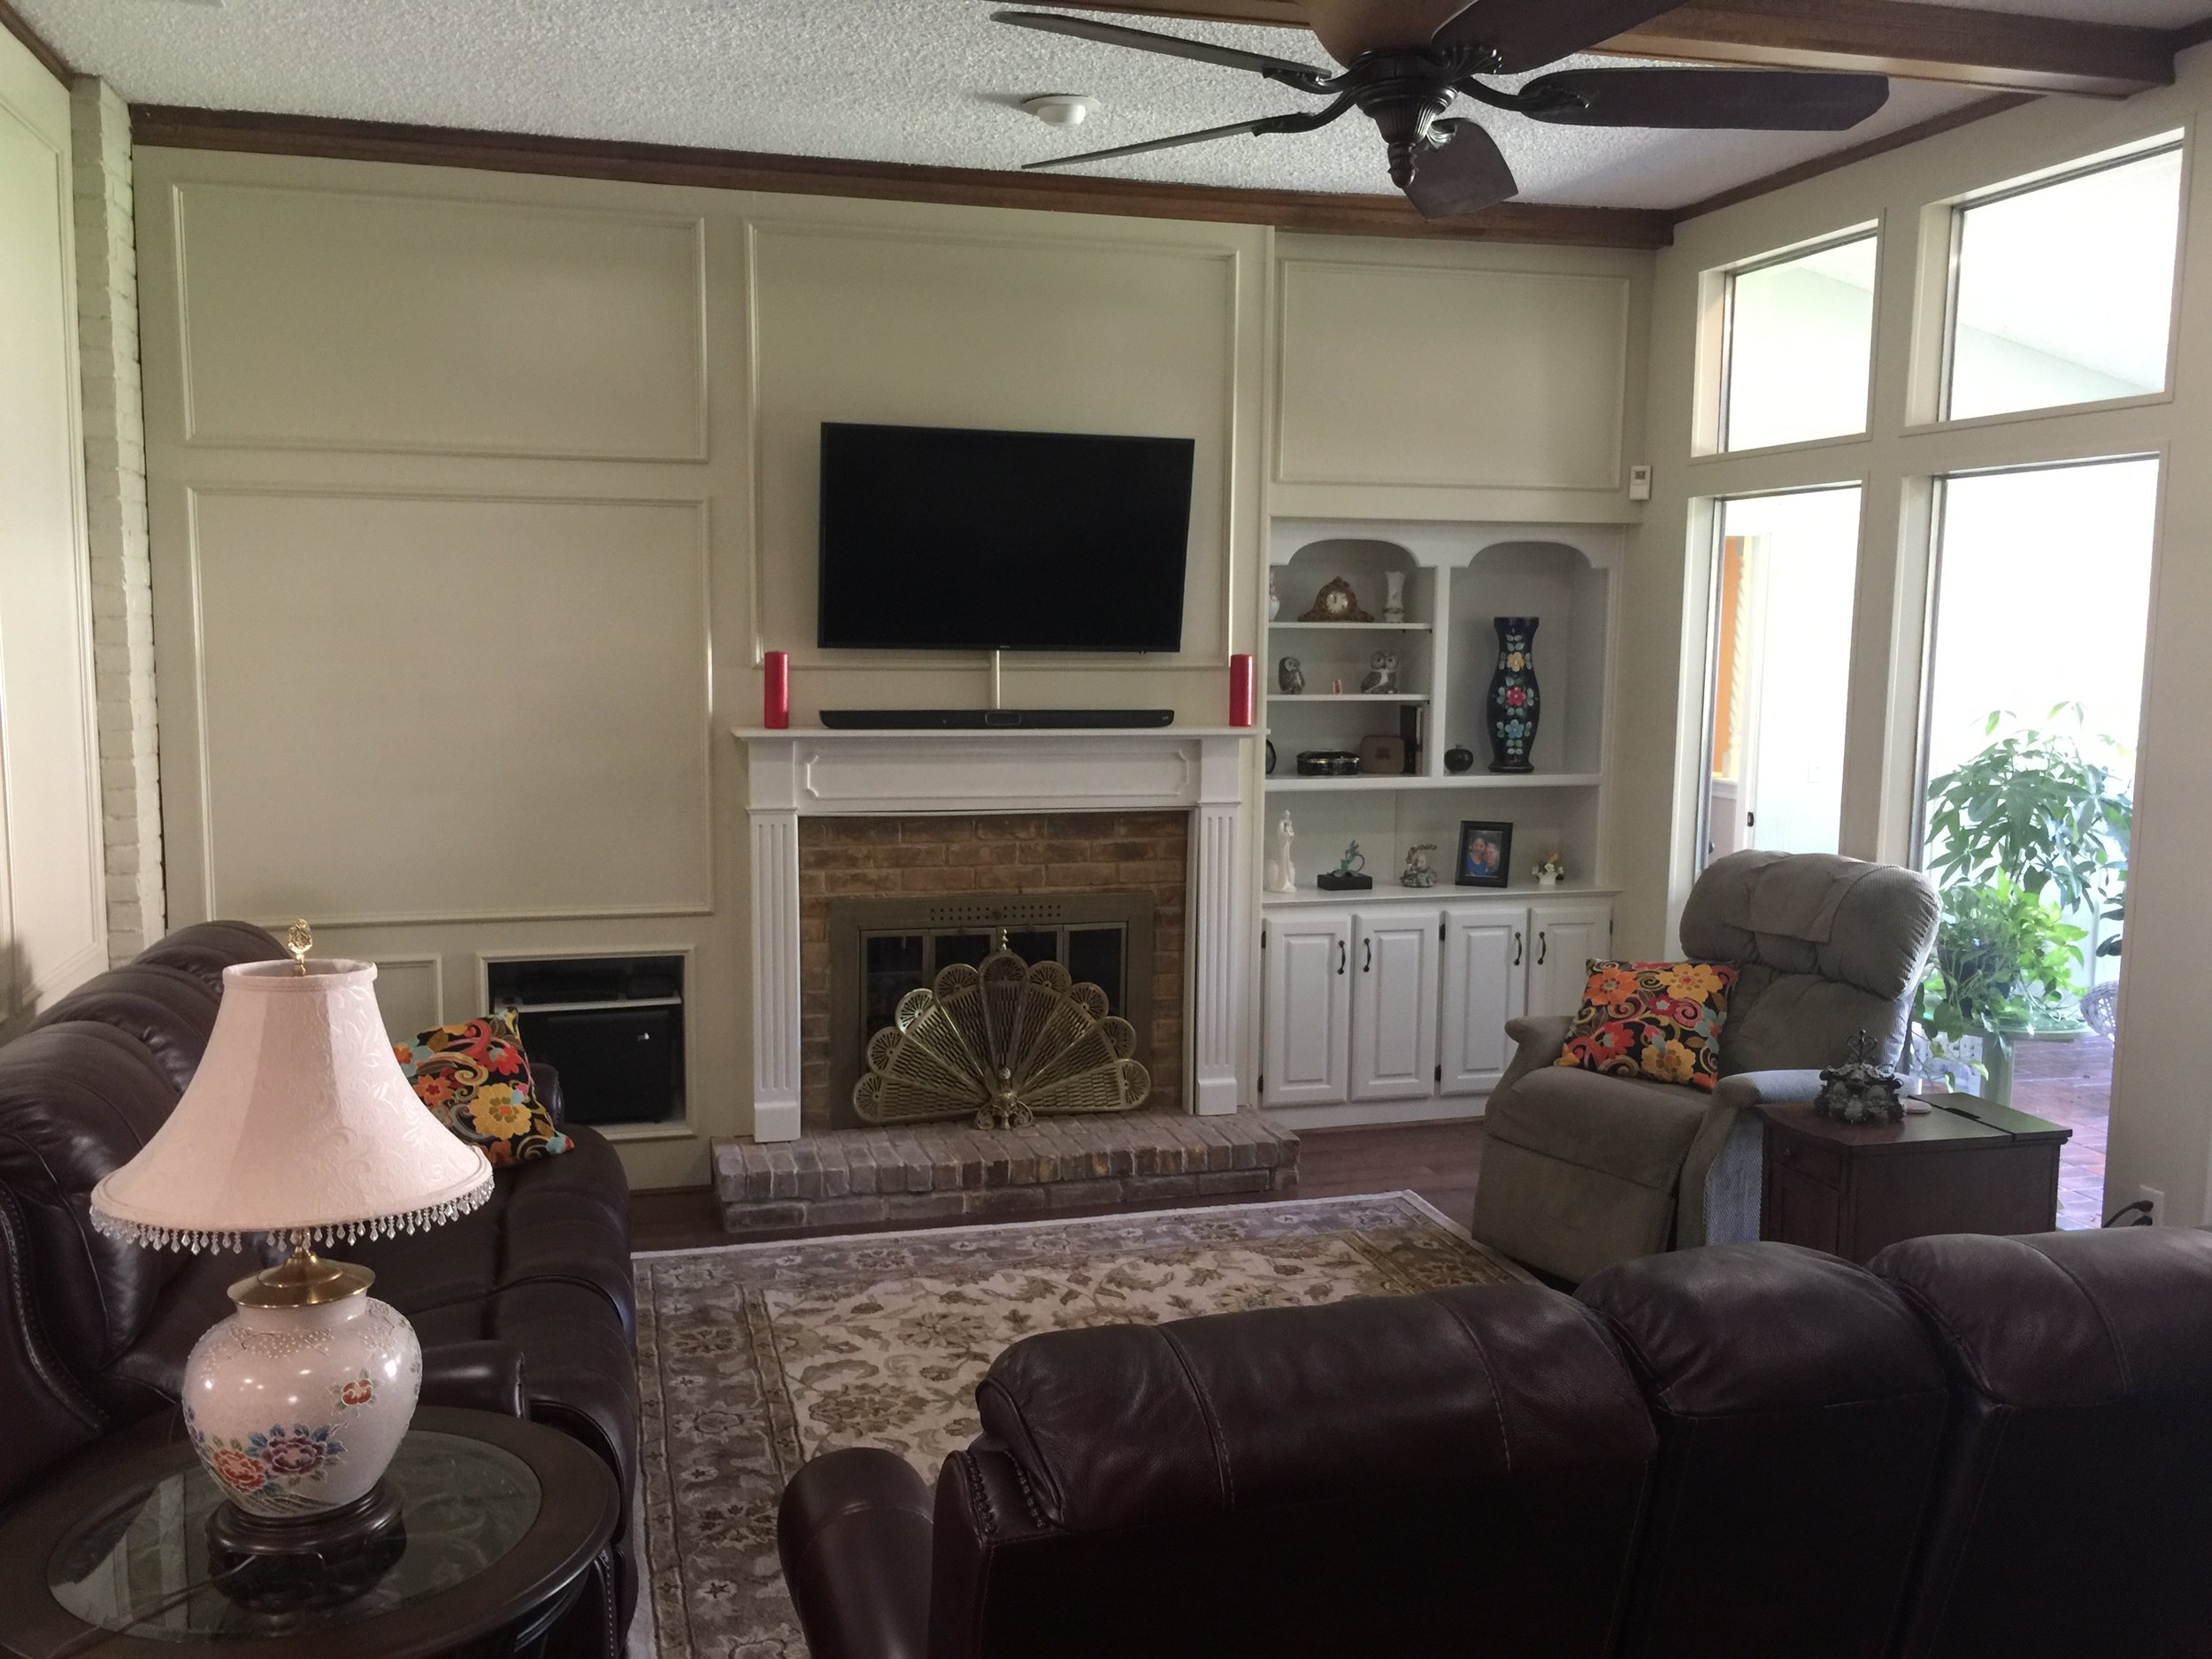 Interior reconstructed over brick with wall mounted TV